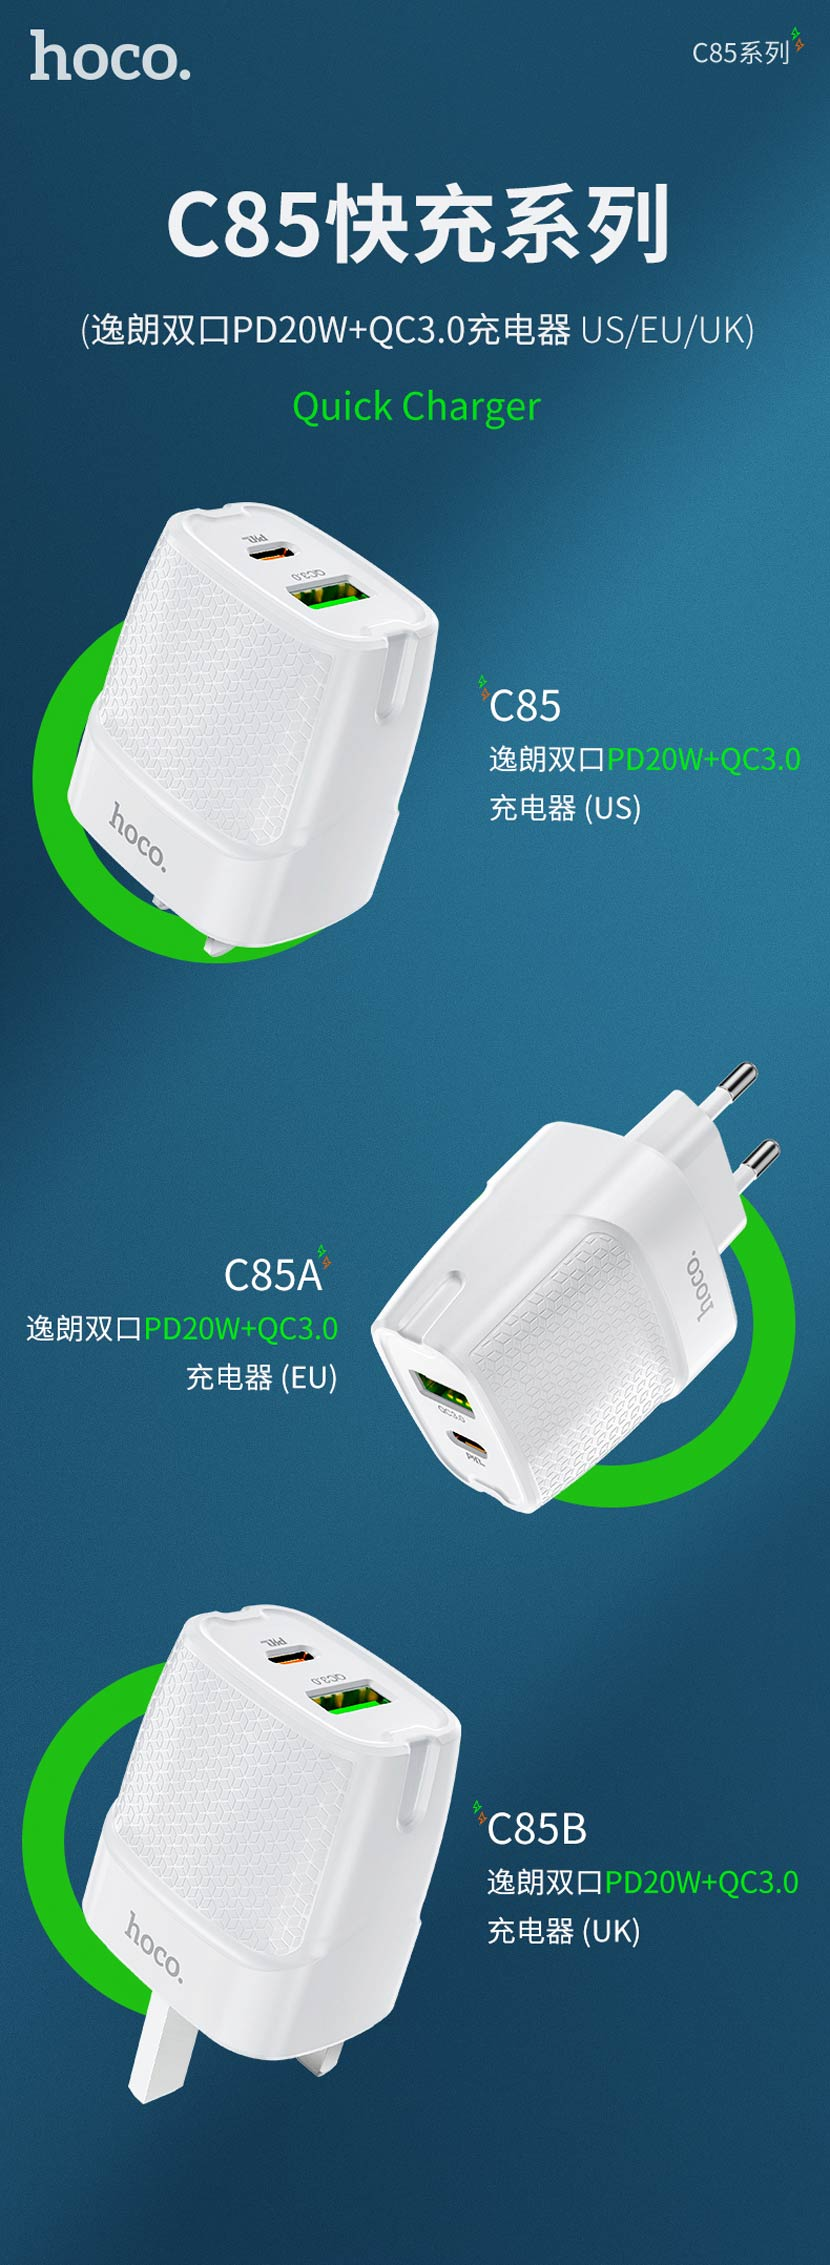 hoco news c85 bright dual port pd20w qc3 wall charger plugs cn